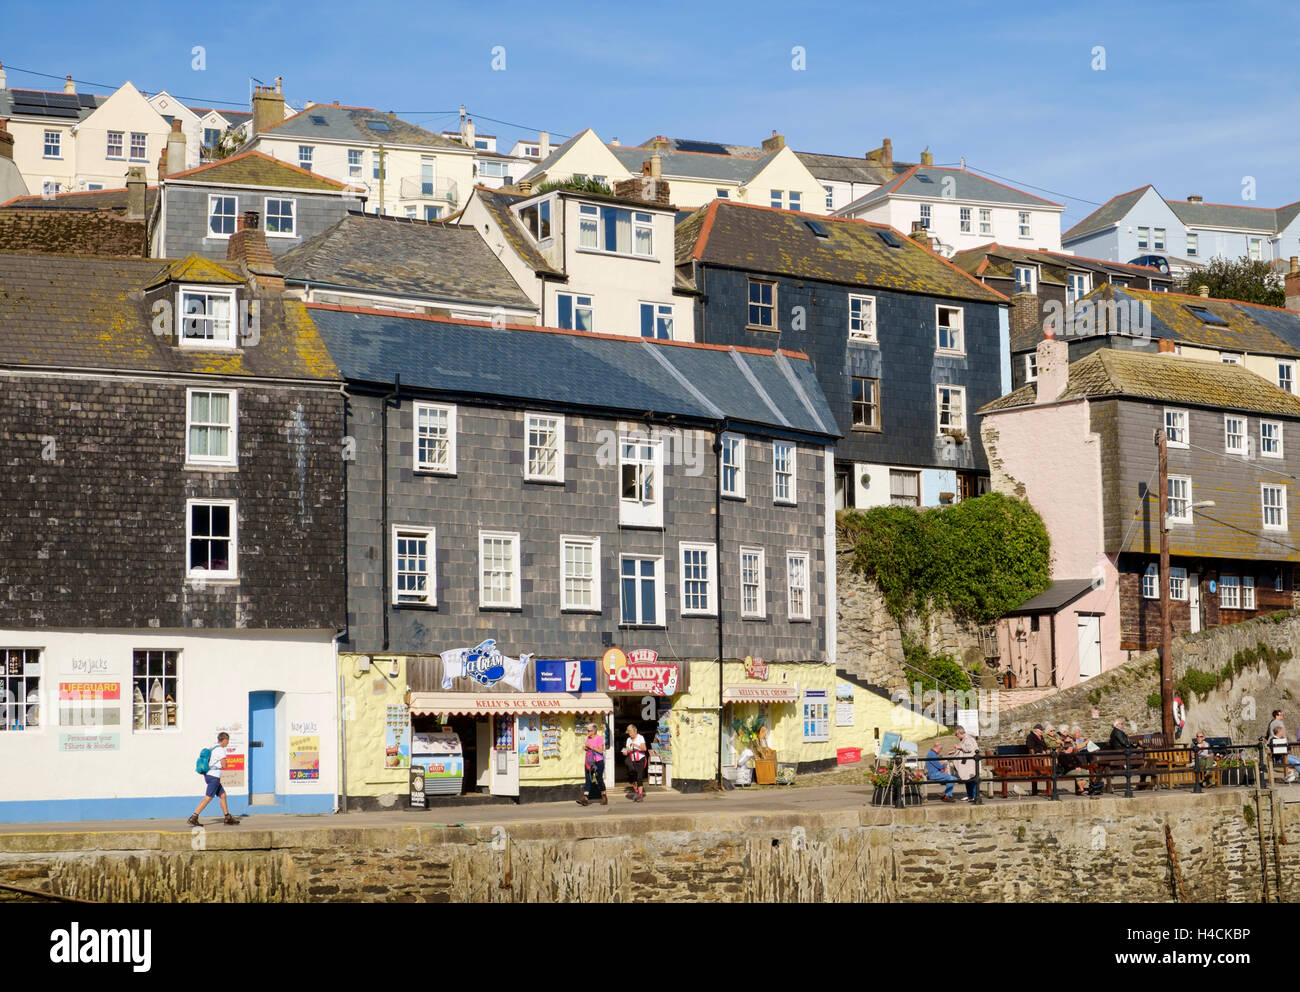 Quayside with shops and houses above the harbour, Mevagissey, Cornwall, England, UK - Stock Image